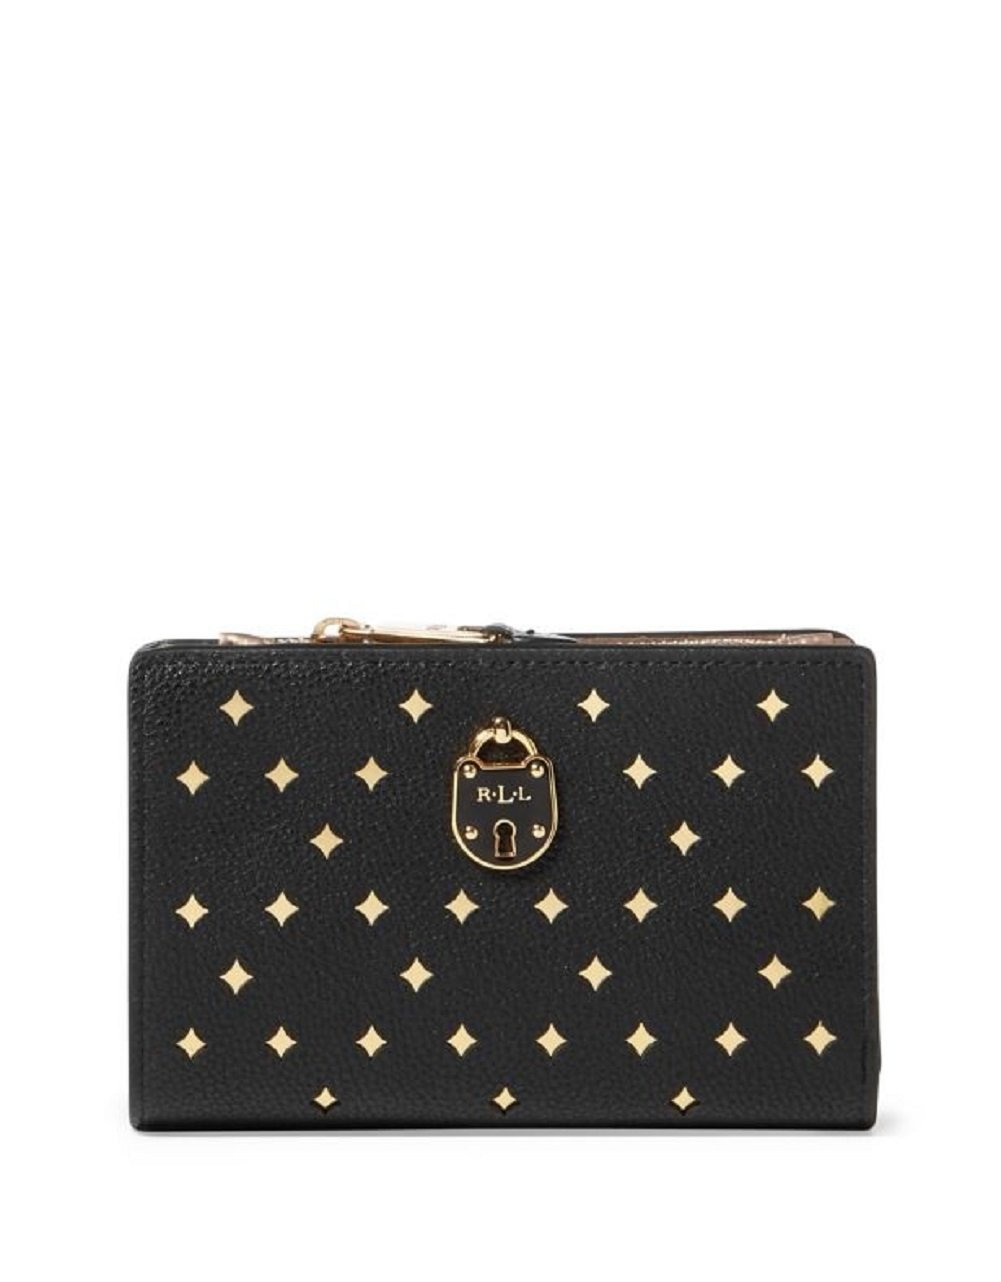 Lauren Ralph Lauren Women's Pebbled Compact Wallet by Lauren by Ralph Lauren